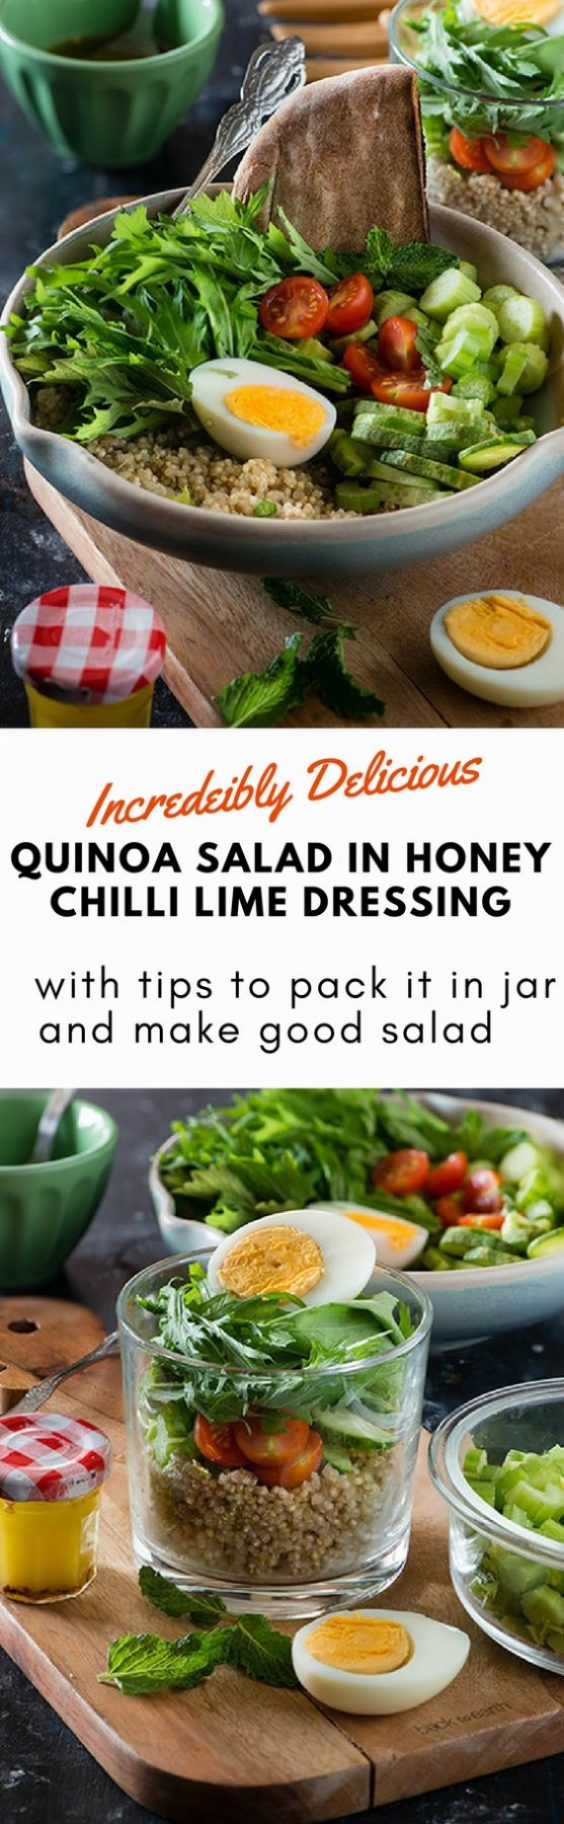 Quinoa salad with Mizuna leaves. This Mizuna and quinoa salad is incredibly delicious, HEALTHY and filling salad for lunch. With honey chilli lime dressing it makes an excellent quinoa salad for lunch. You can pack this quinoa salad in Jar for delicious packed lunch for office or school #vegetarian #LowGI #Paleo #Glutenfree via @rekhaKakkar.